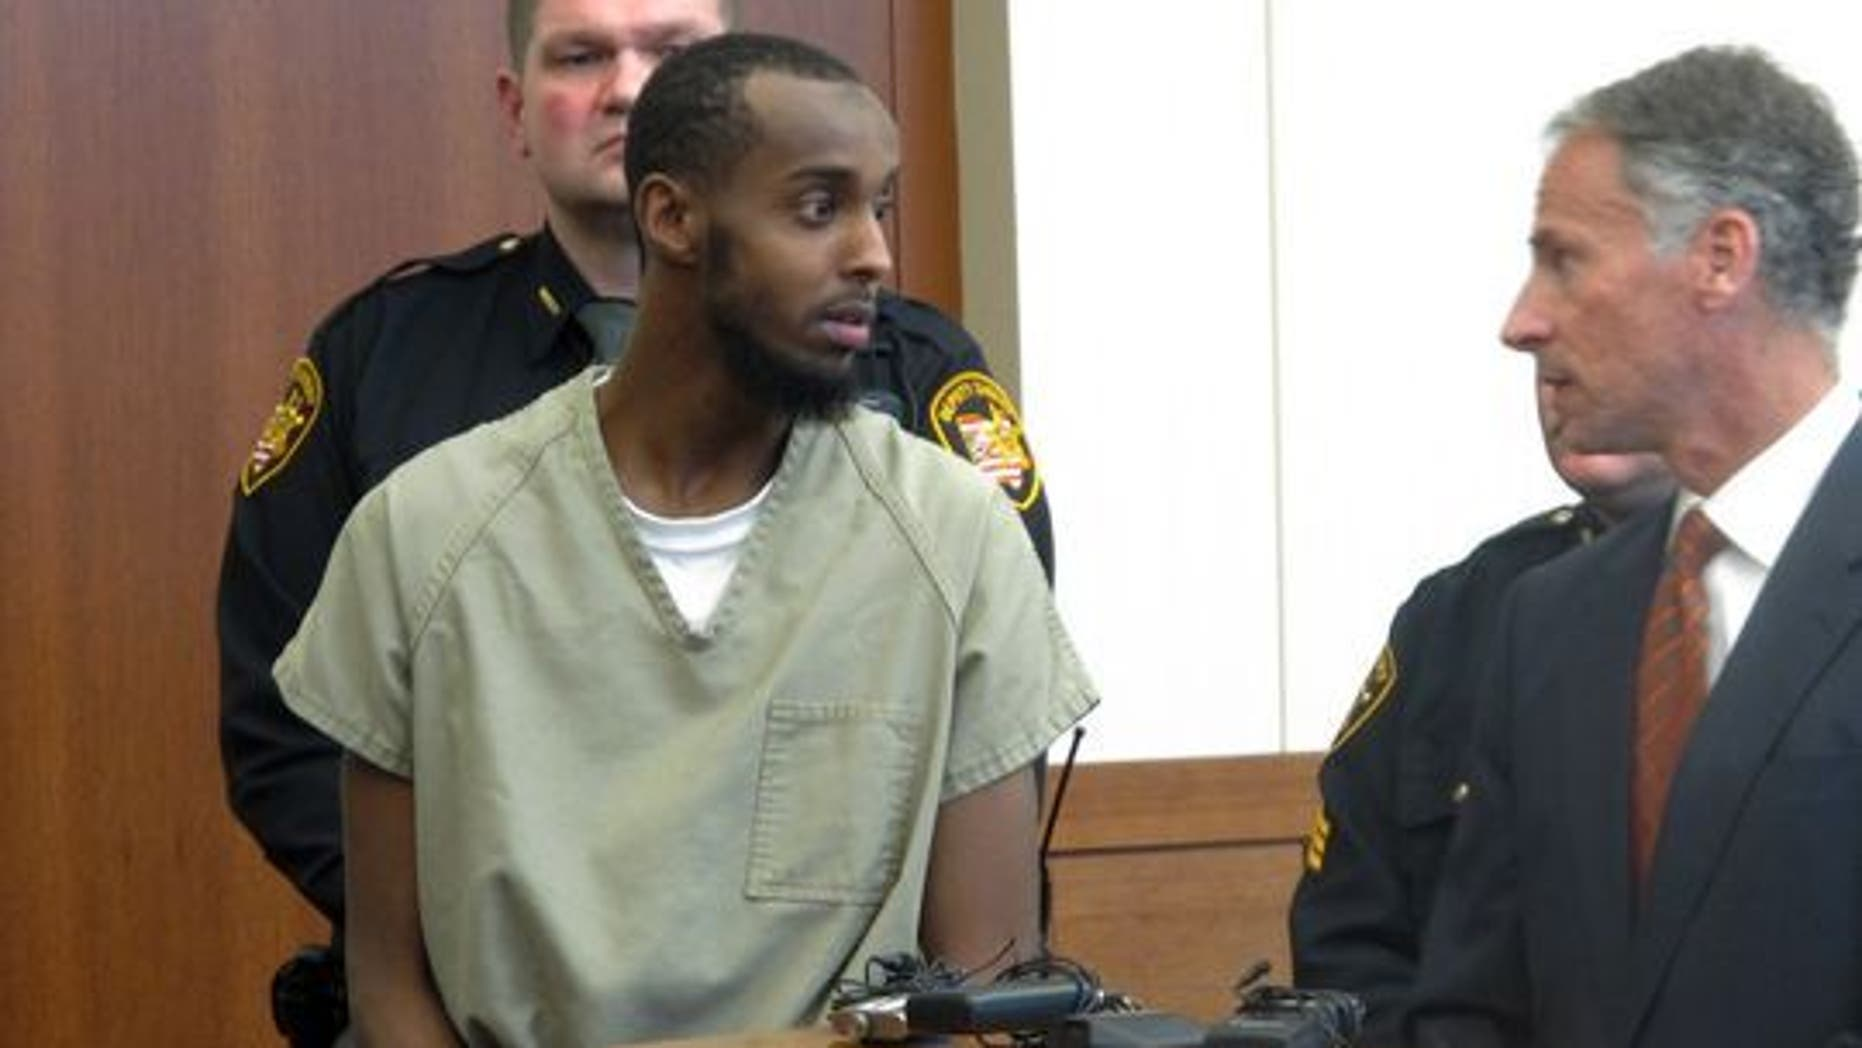 Abdirahman Sheik Mohamud pleaded guilty on all counts of alleged terrorism.